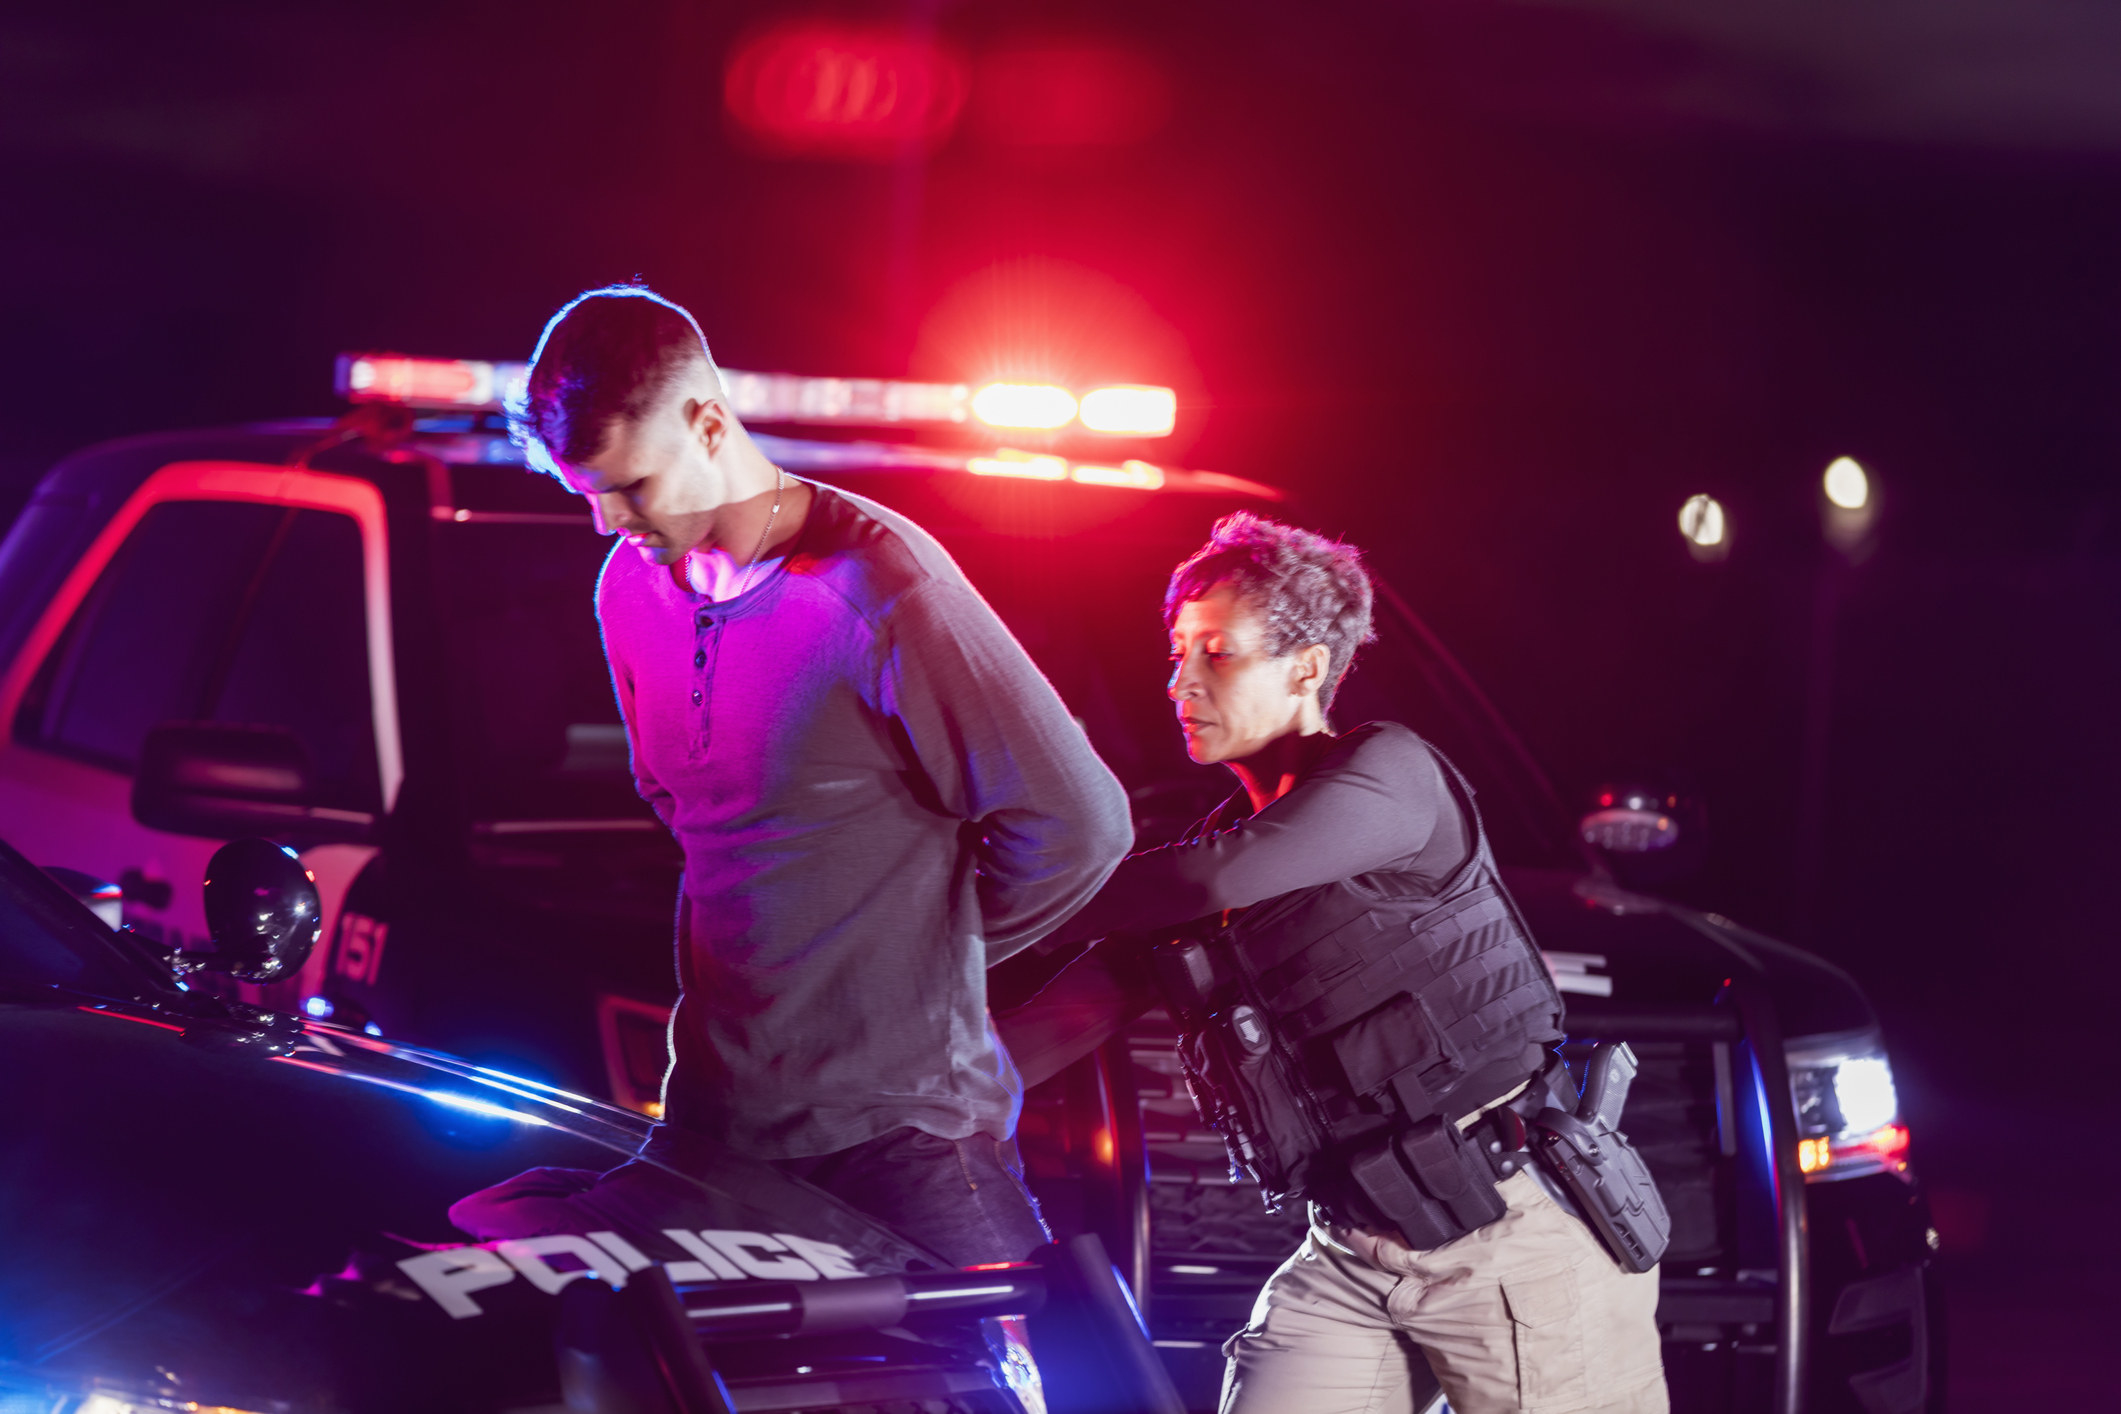 Police officer arresting a young man